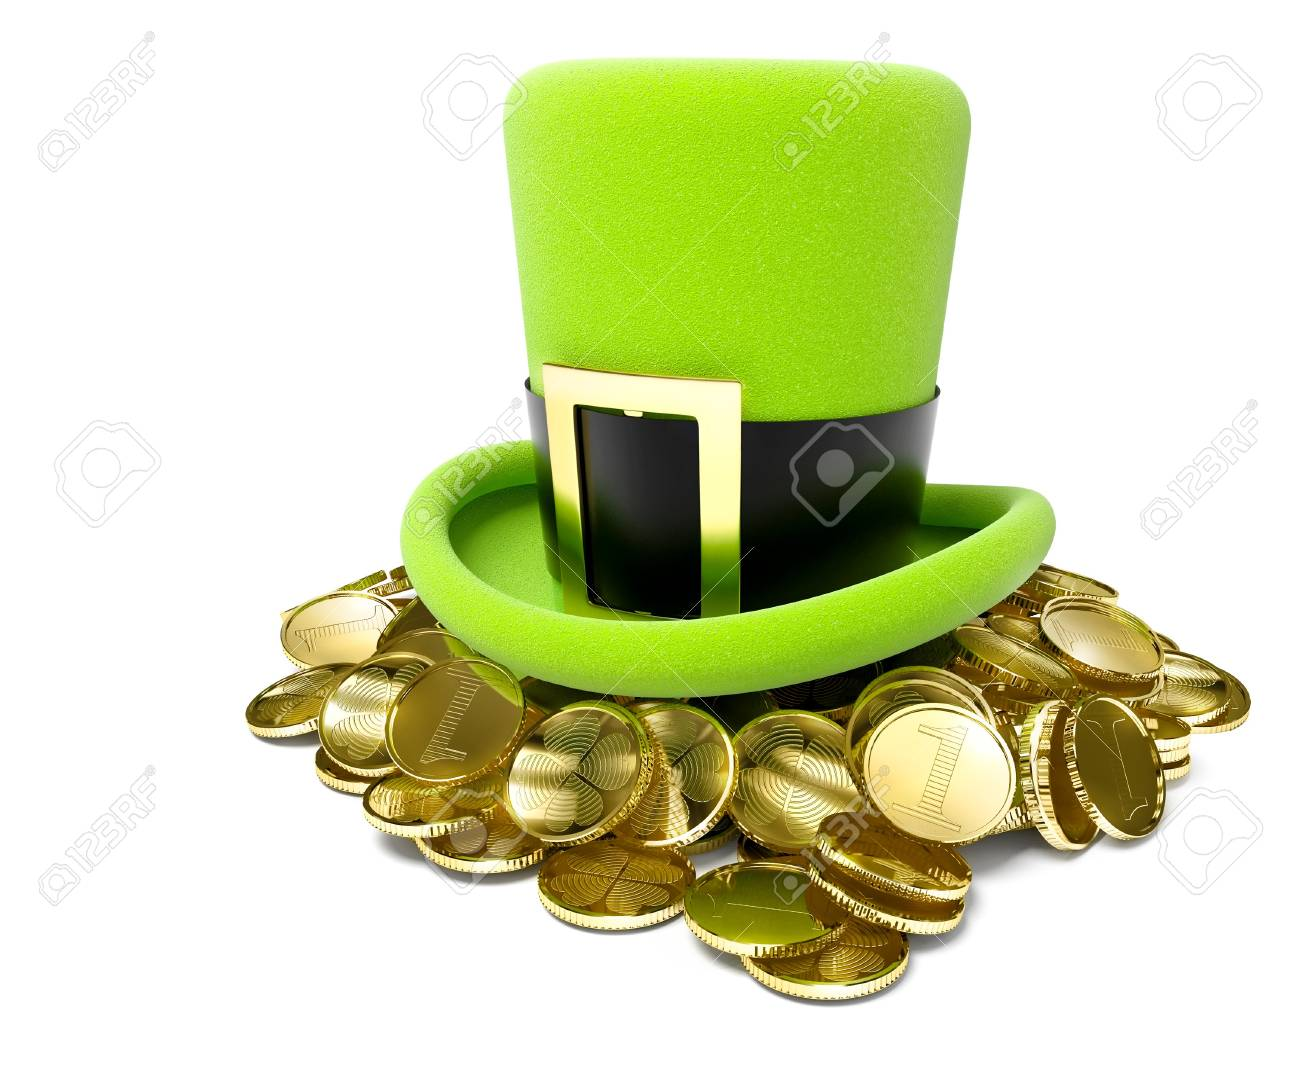 saint patrick's hat on pile of golden coin 3d-illustration isolated on white background Stock Photo - 12173902